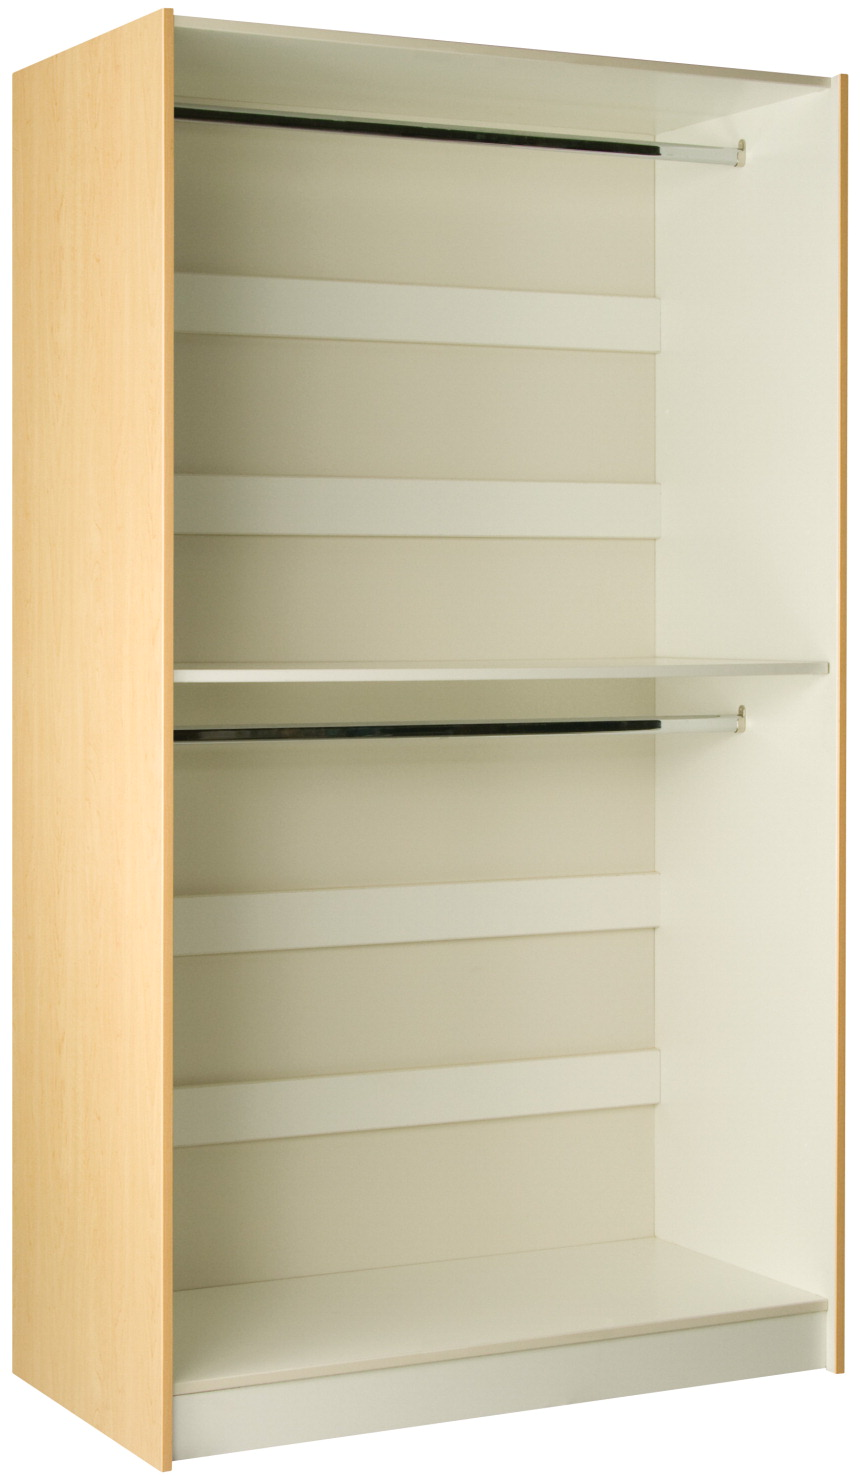 Stevens I D Systems Band Uniform Storage Cabinet 35 X 24 84 Inches Various